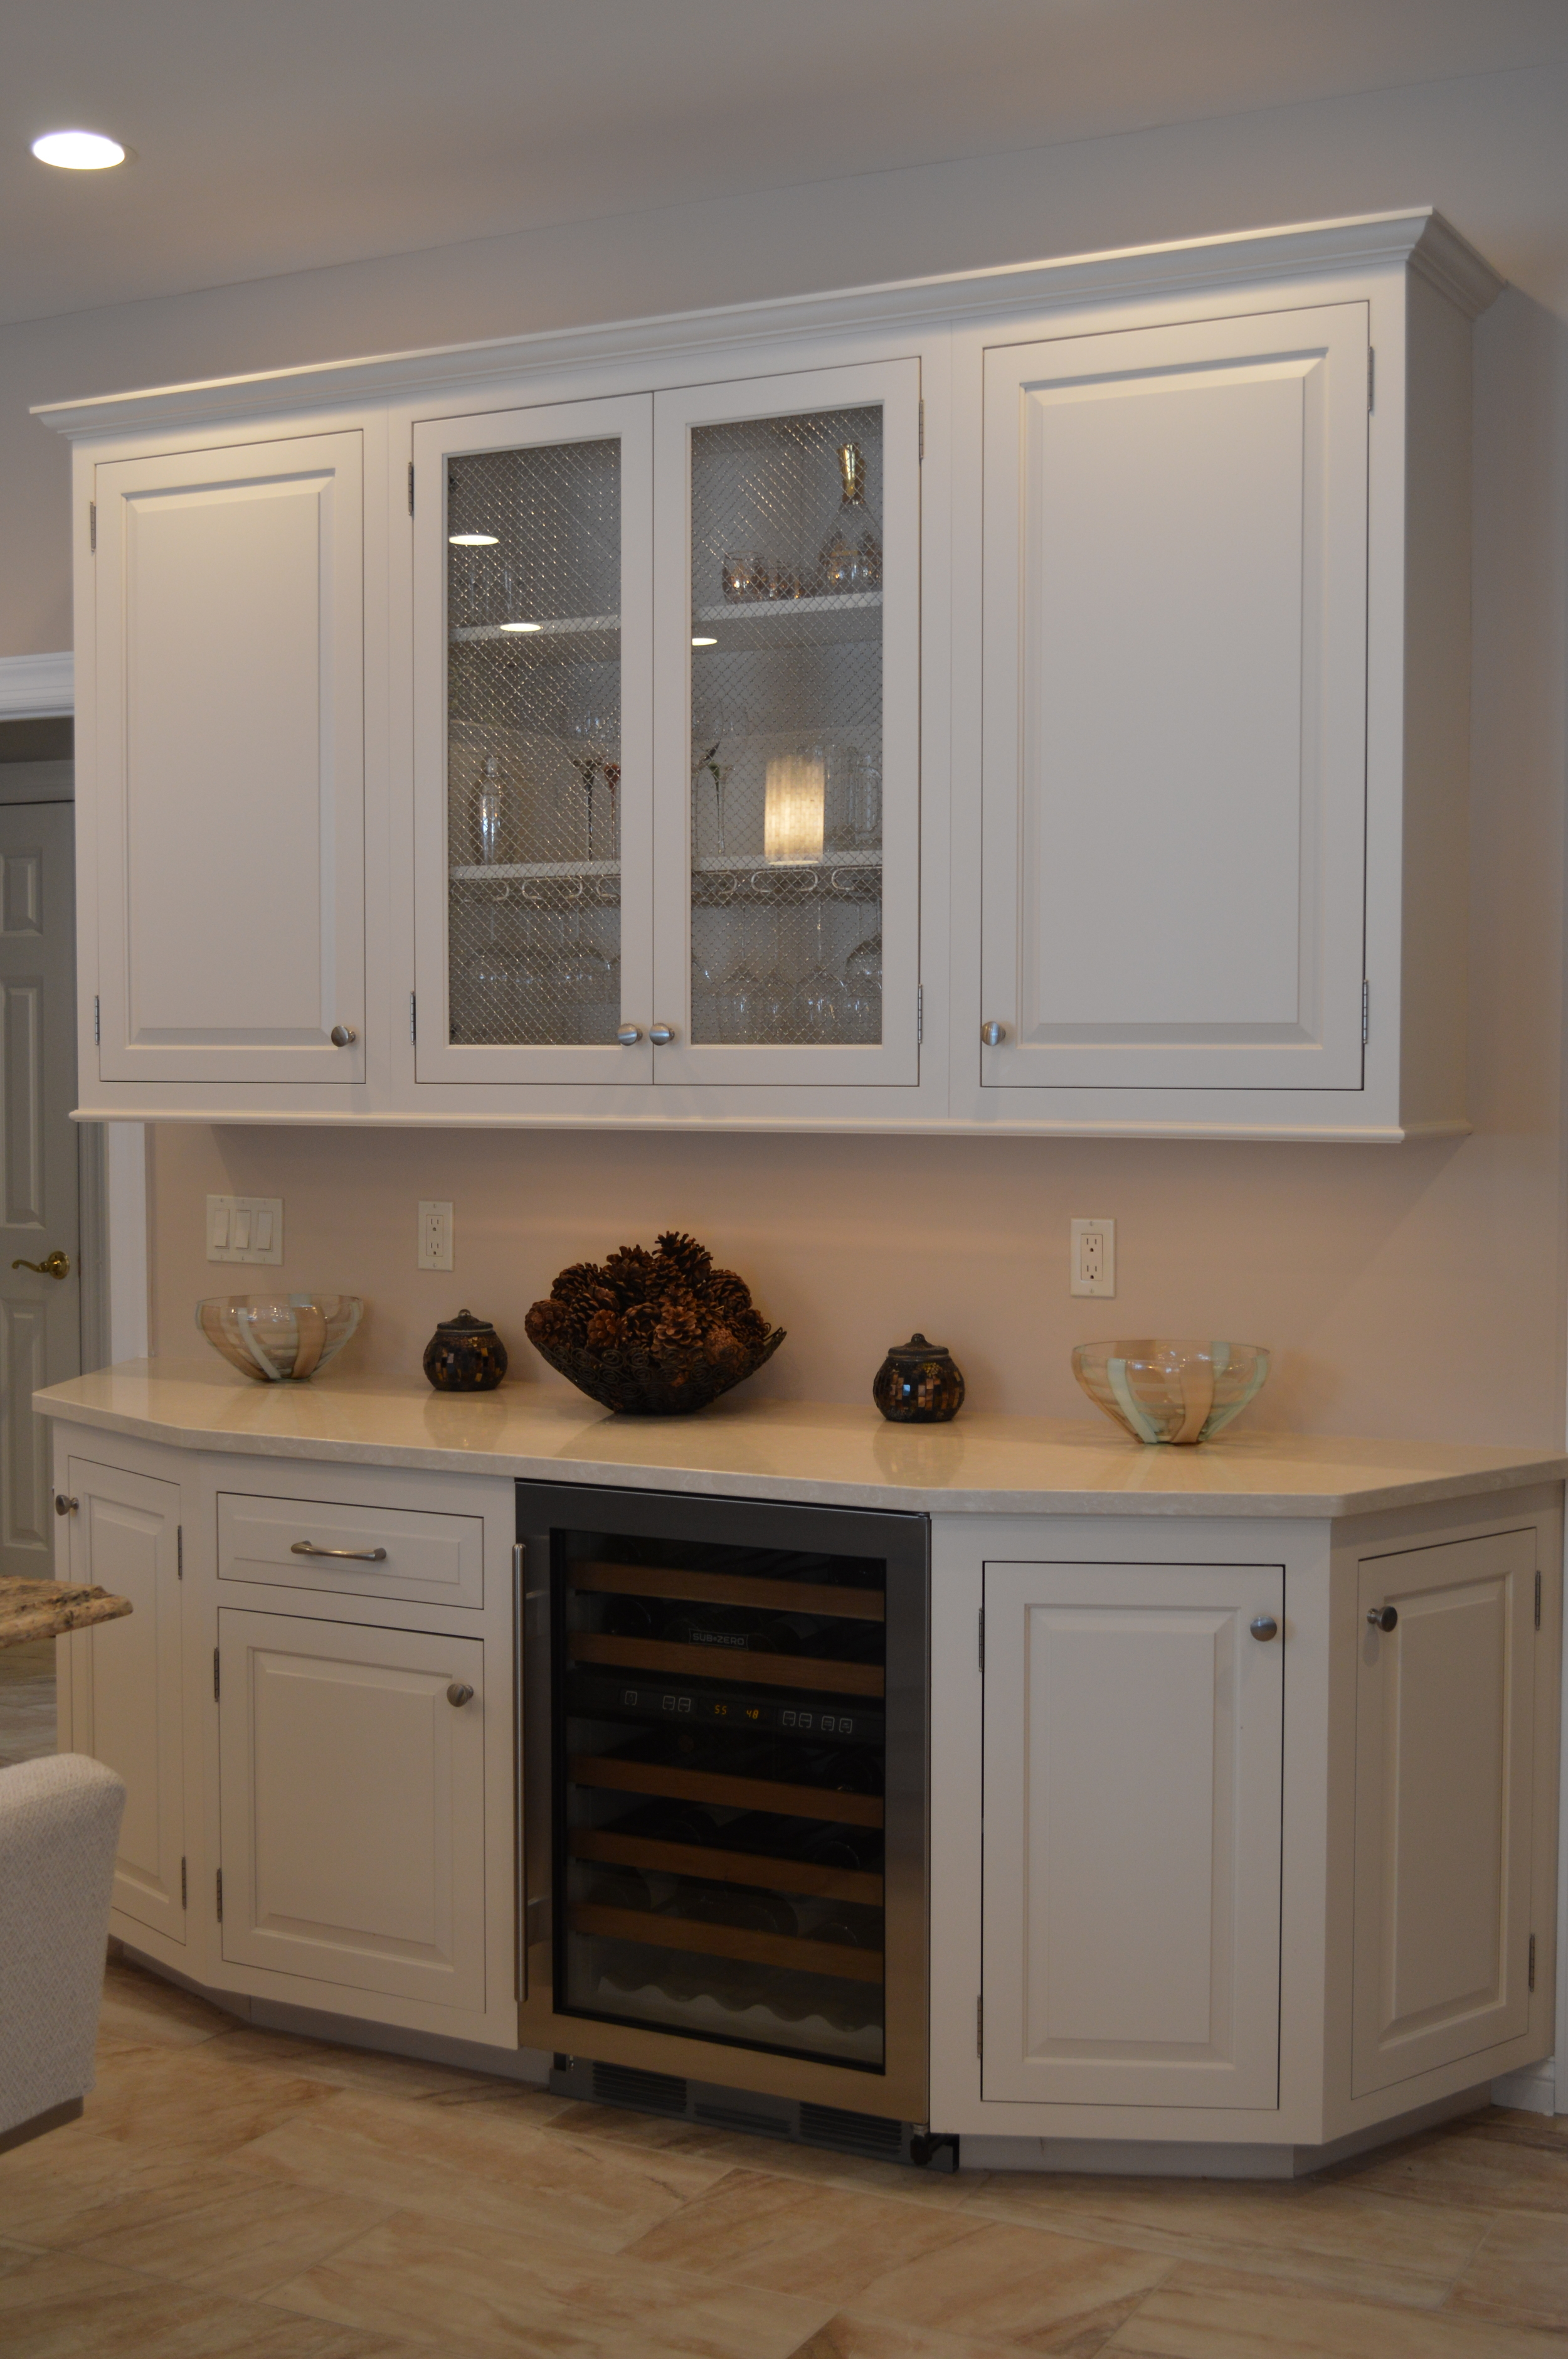 Kitchen Wine Fridge - Glass Cabinet Doors and Angled Base Cabinet